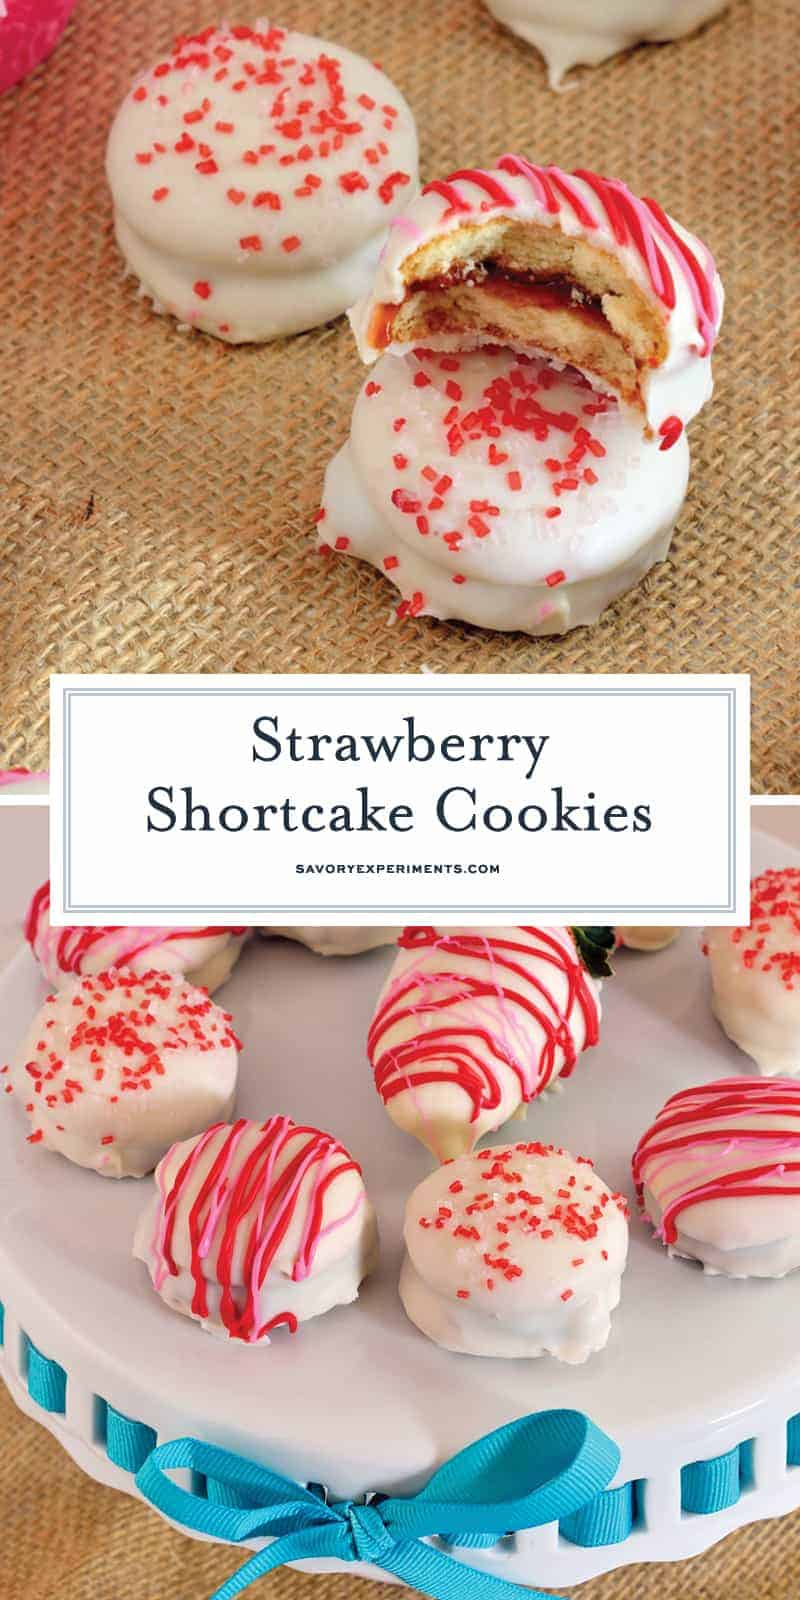 Strawberry Shortcake Cookies are a easy to make no-bake cookies that sandwich vanilla wafers with jam and are then dipped in white chocolate. #nobakecookies #strawberryshortcakecookies www.savoryexperiments.com